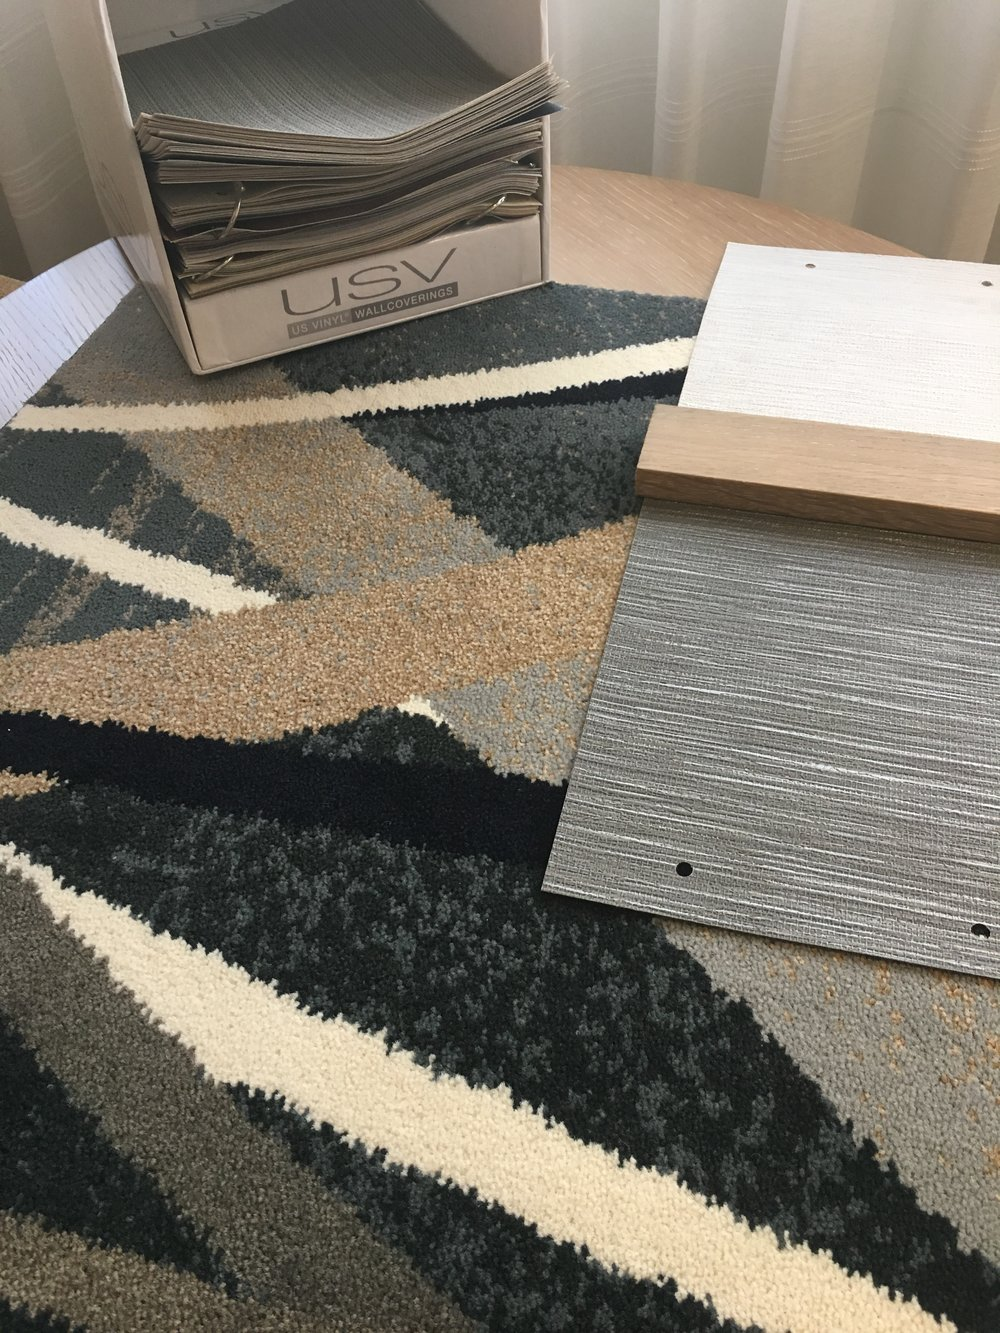 this design uses USVinyl wall coverings and Lexmark Hospitality carpet